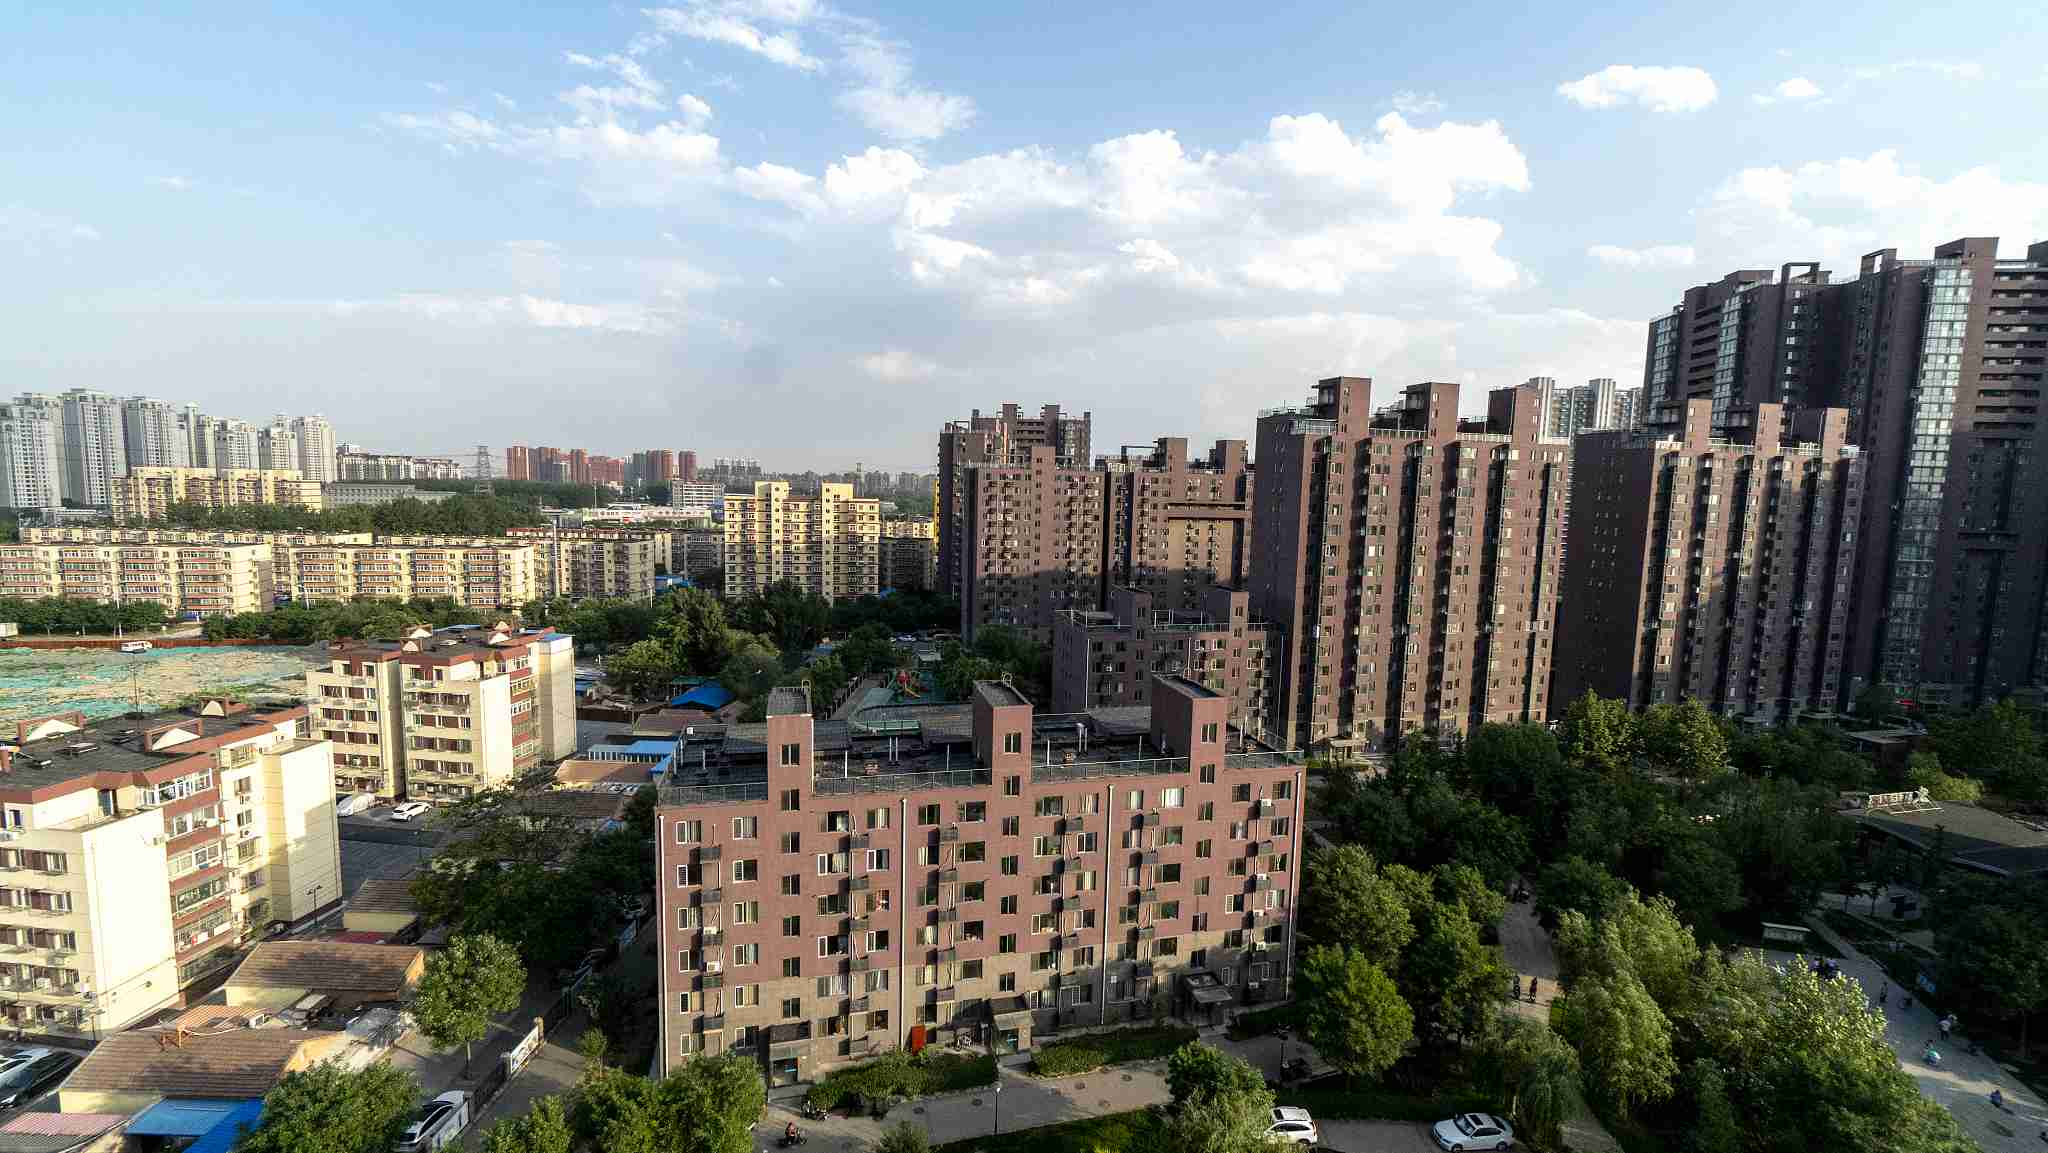 Beijing reports less real estate investment in 2019